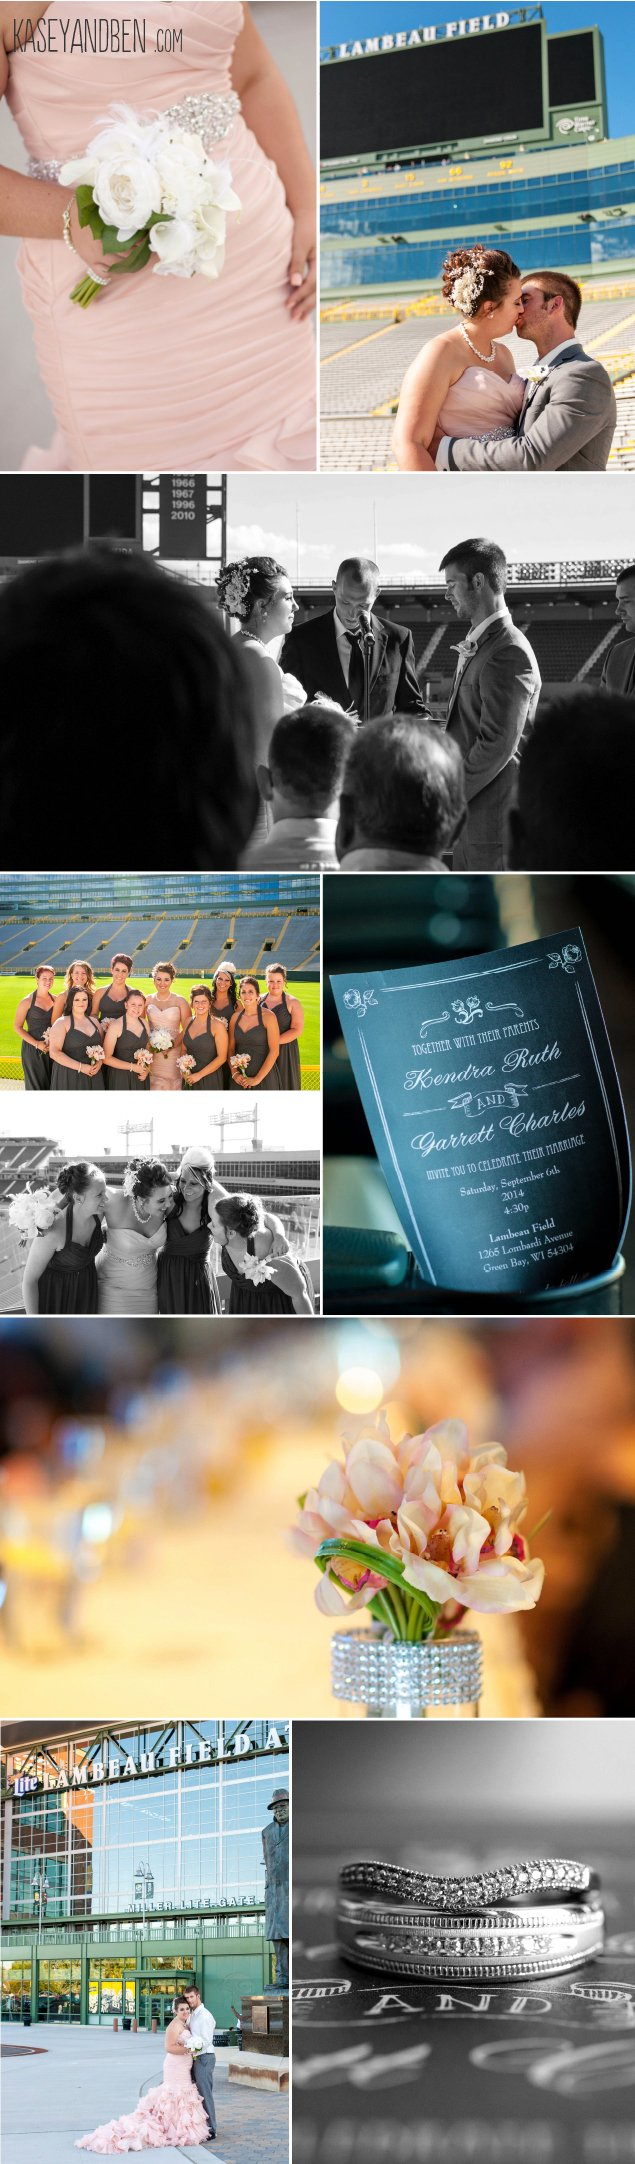 Lambeau_Field_Packers_Outdoor_Wedding_Green_Bay_2